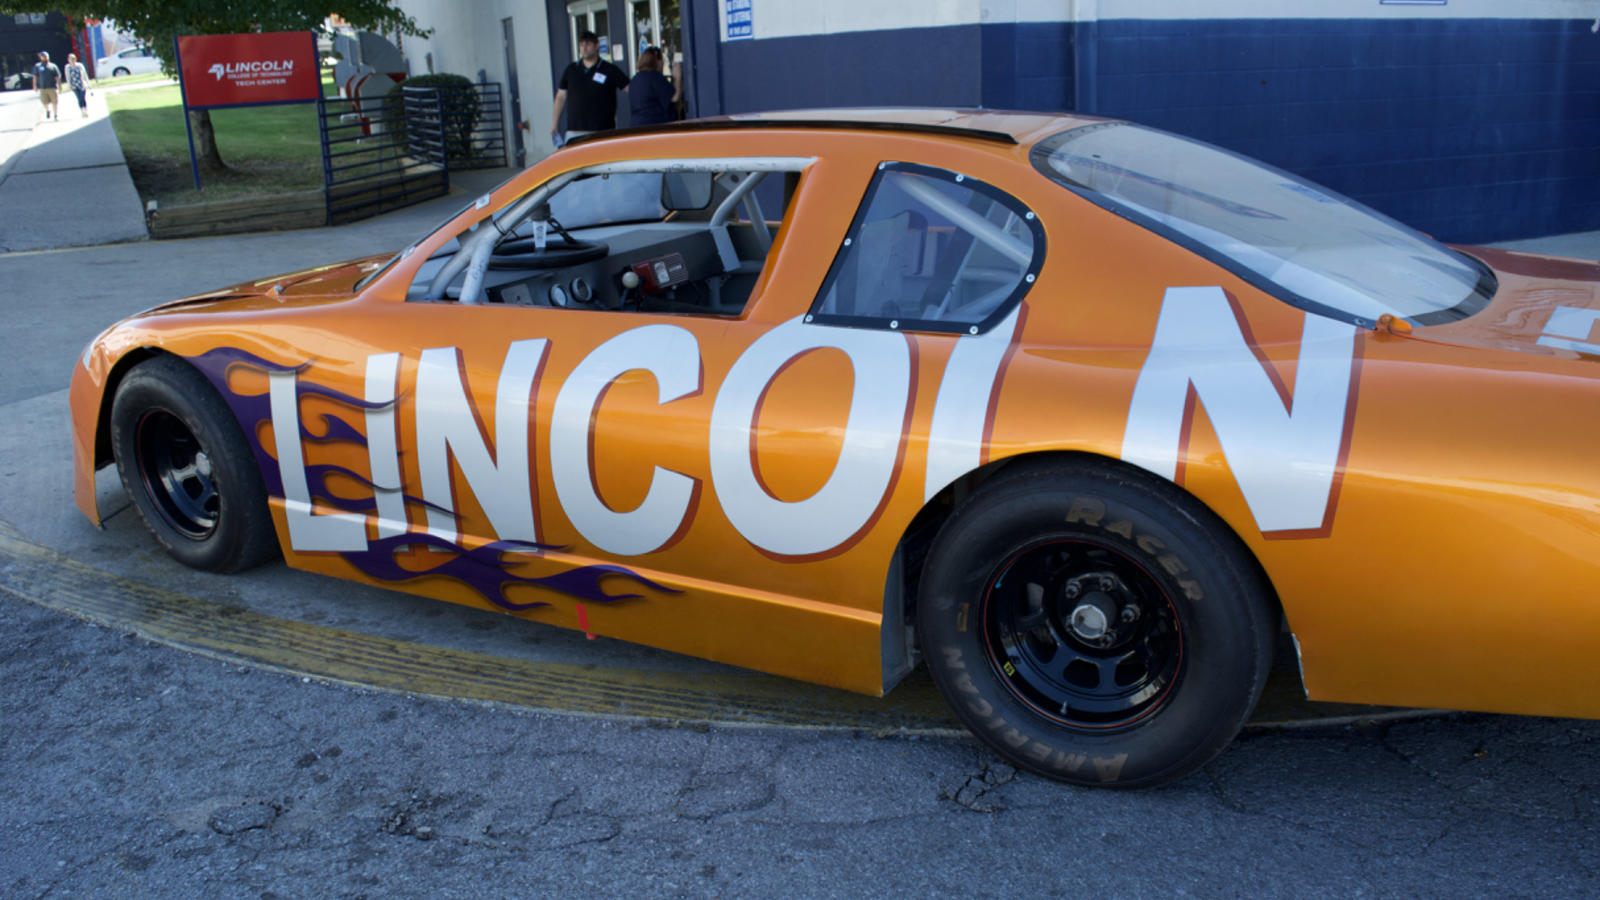 The Lincoln Tech Stock Car is Displayed at the Nashville 100th Anniversary Event.